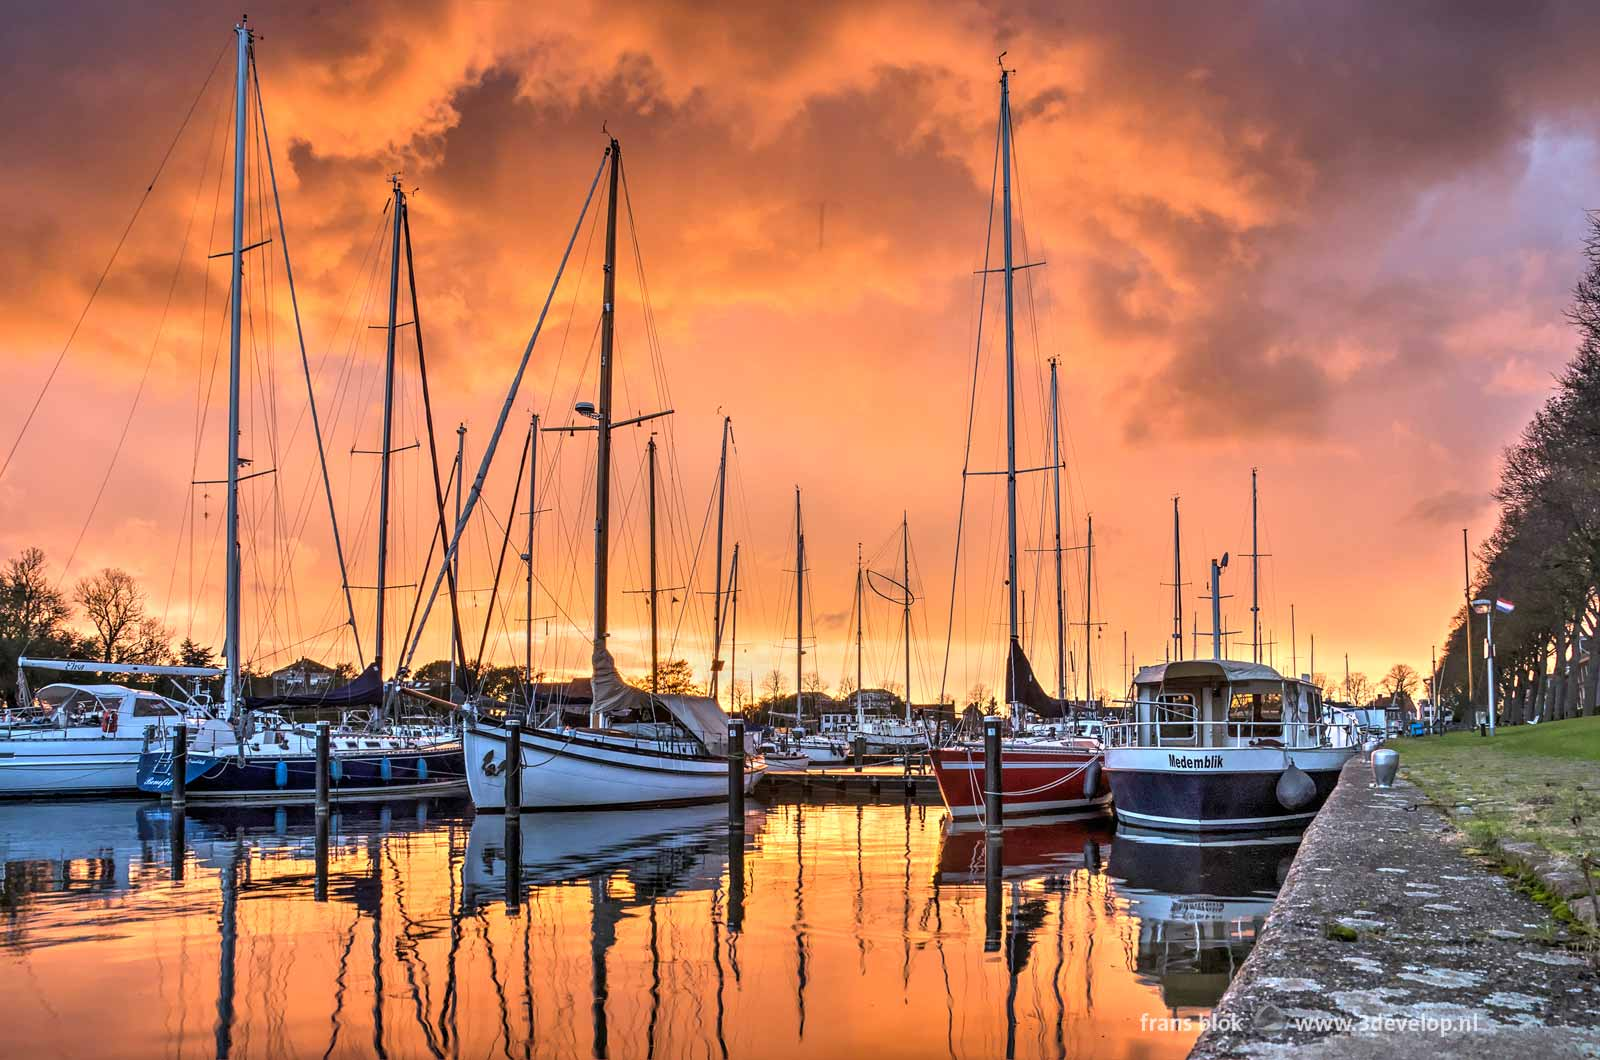 Spectacular red sunset above the sailing yachts in the marina at Medemblik's western harbour in the Netherlands